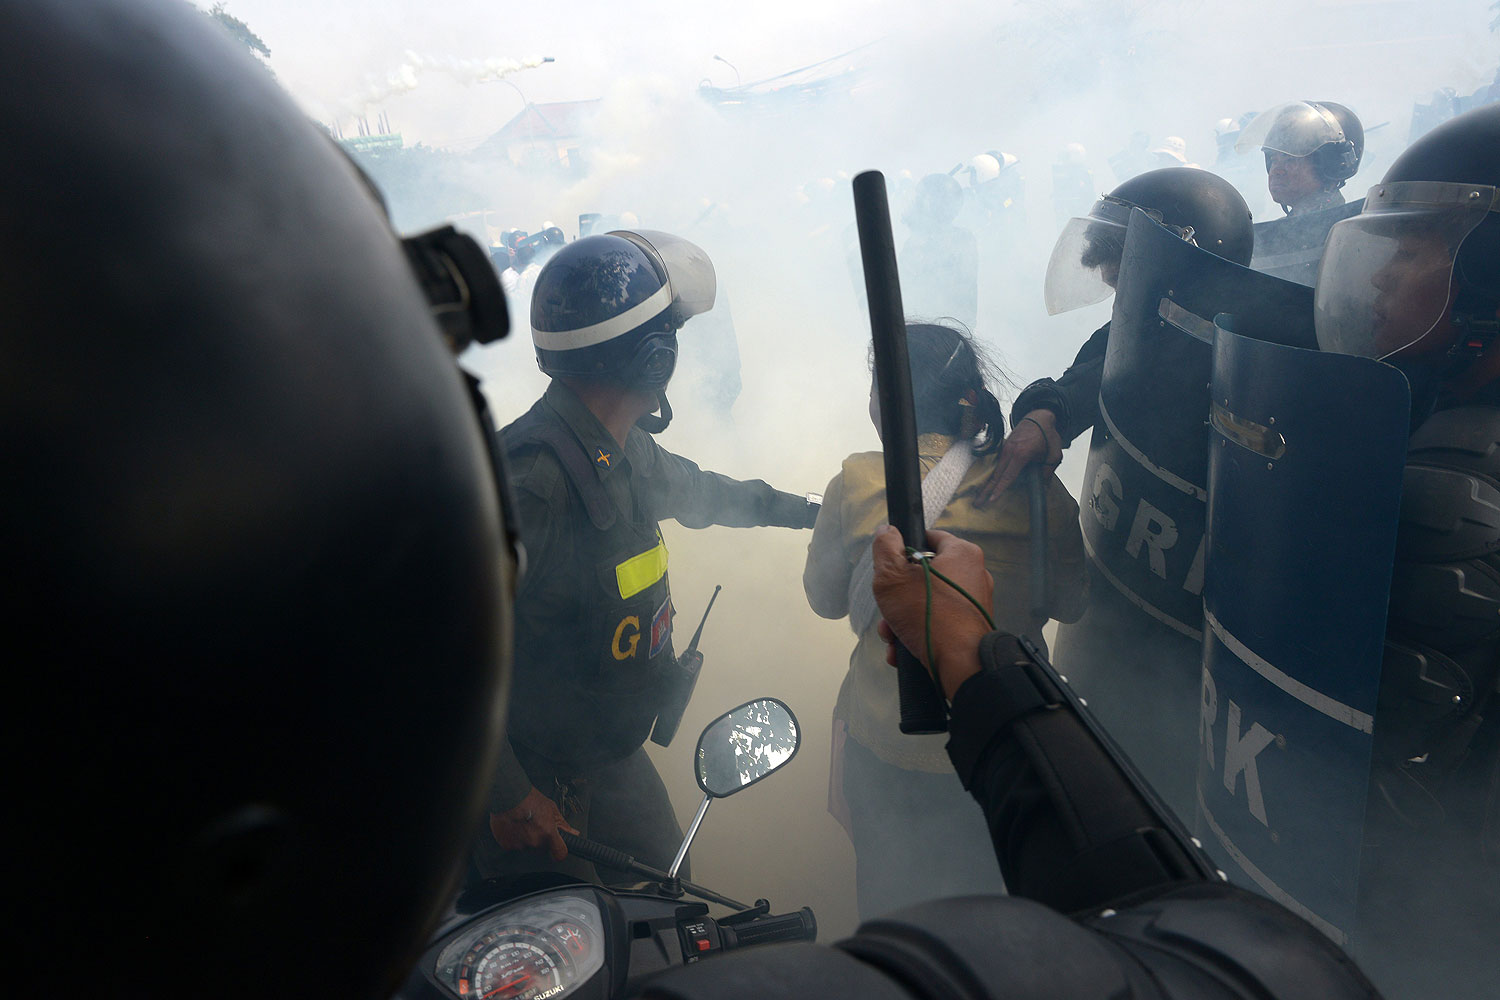 Cambodian military police clash with protesters during a protest in Phnom Penh on Jan. 27, 2014